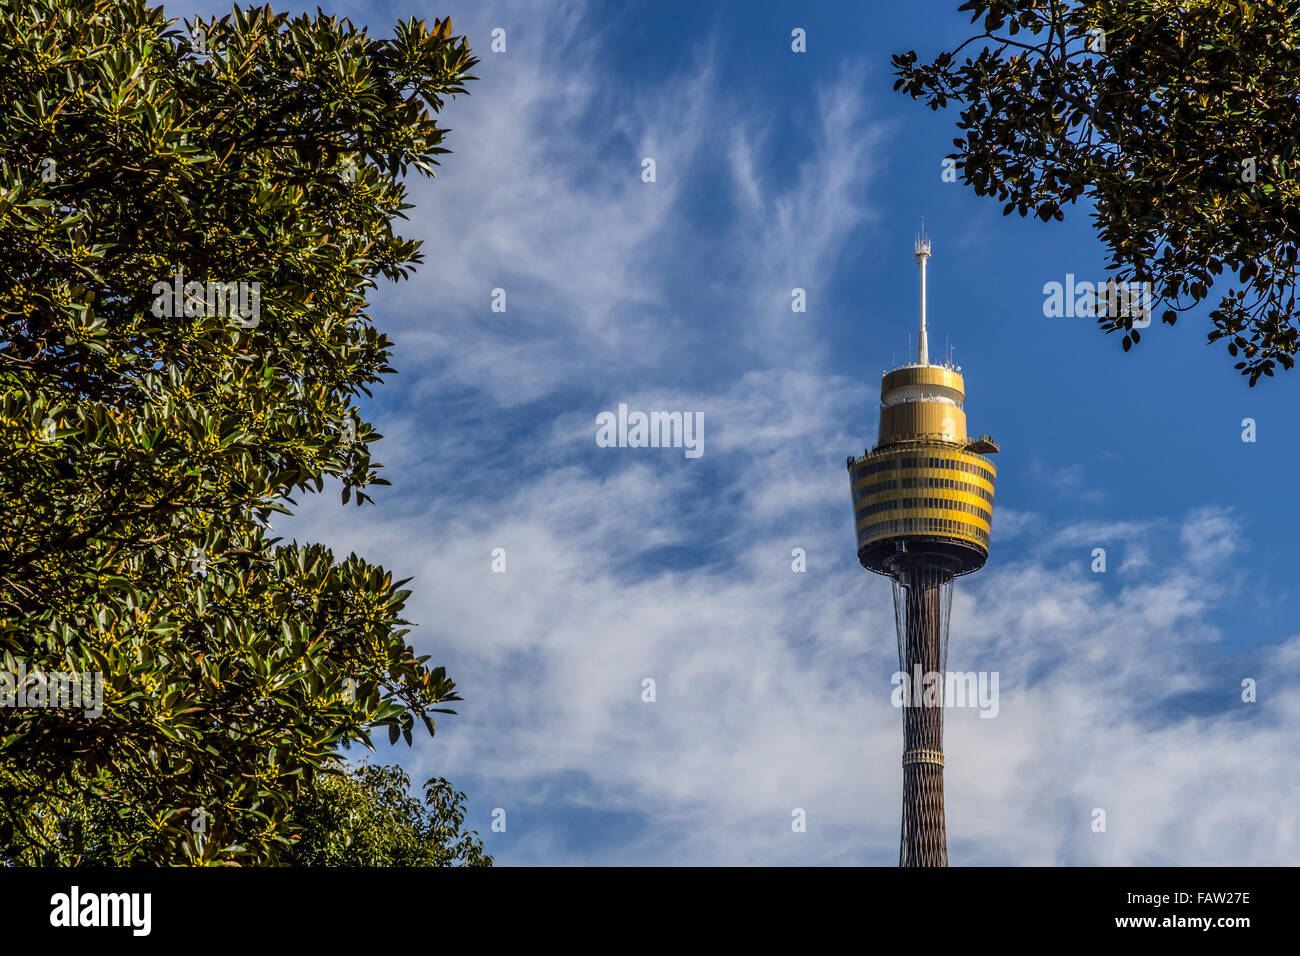 Sydney tower view from park - Stock Image